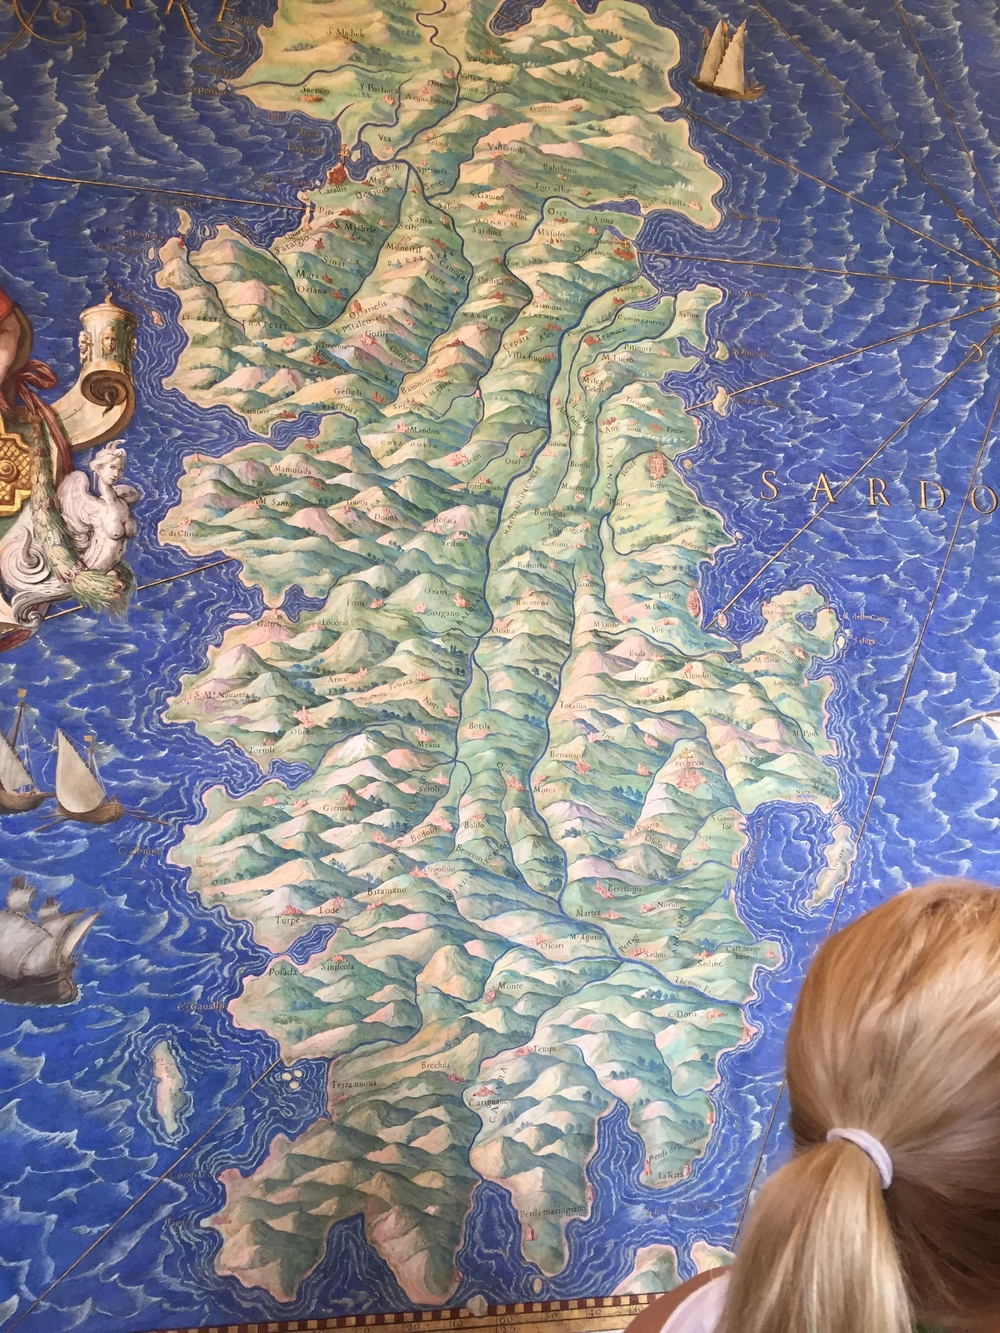 A map fresco from the Vatican. The scale may be fanciful, but you bet the cartographer understood what it was like to walk